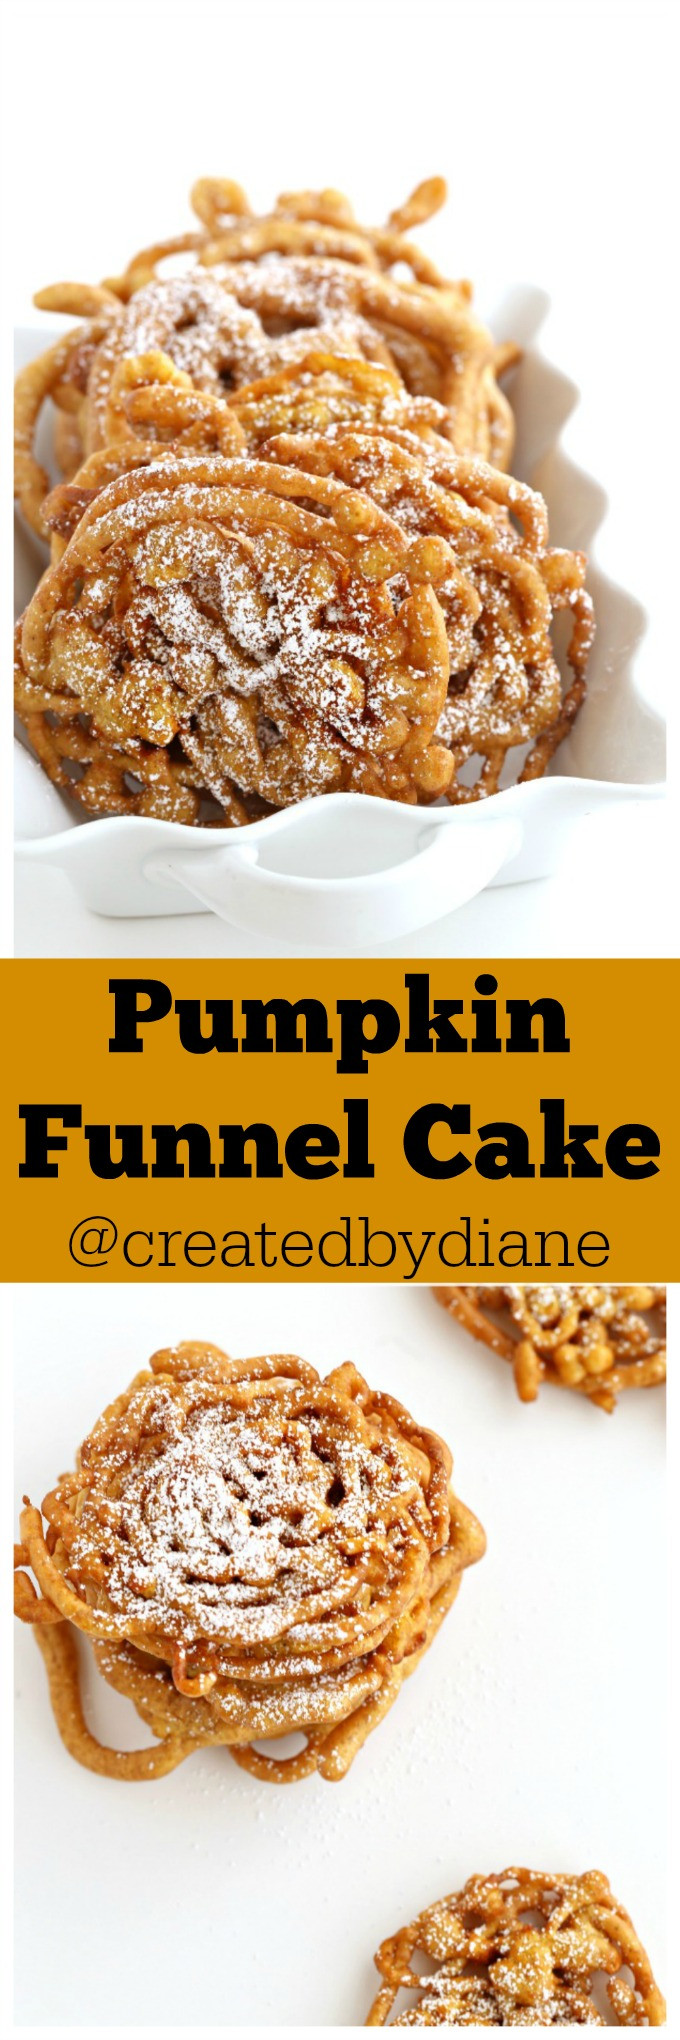 Fall Desserts 2019  Pumpkin Funnel Cake A fall dessert idea